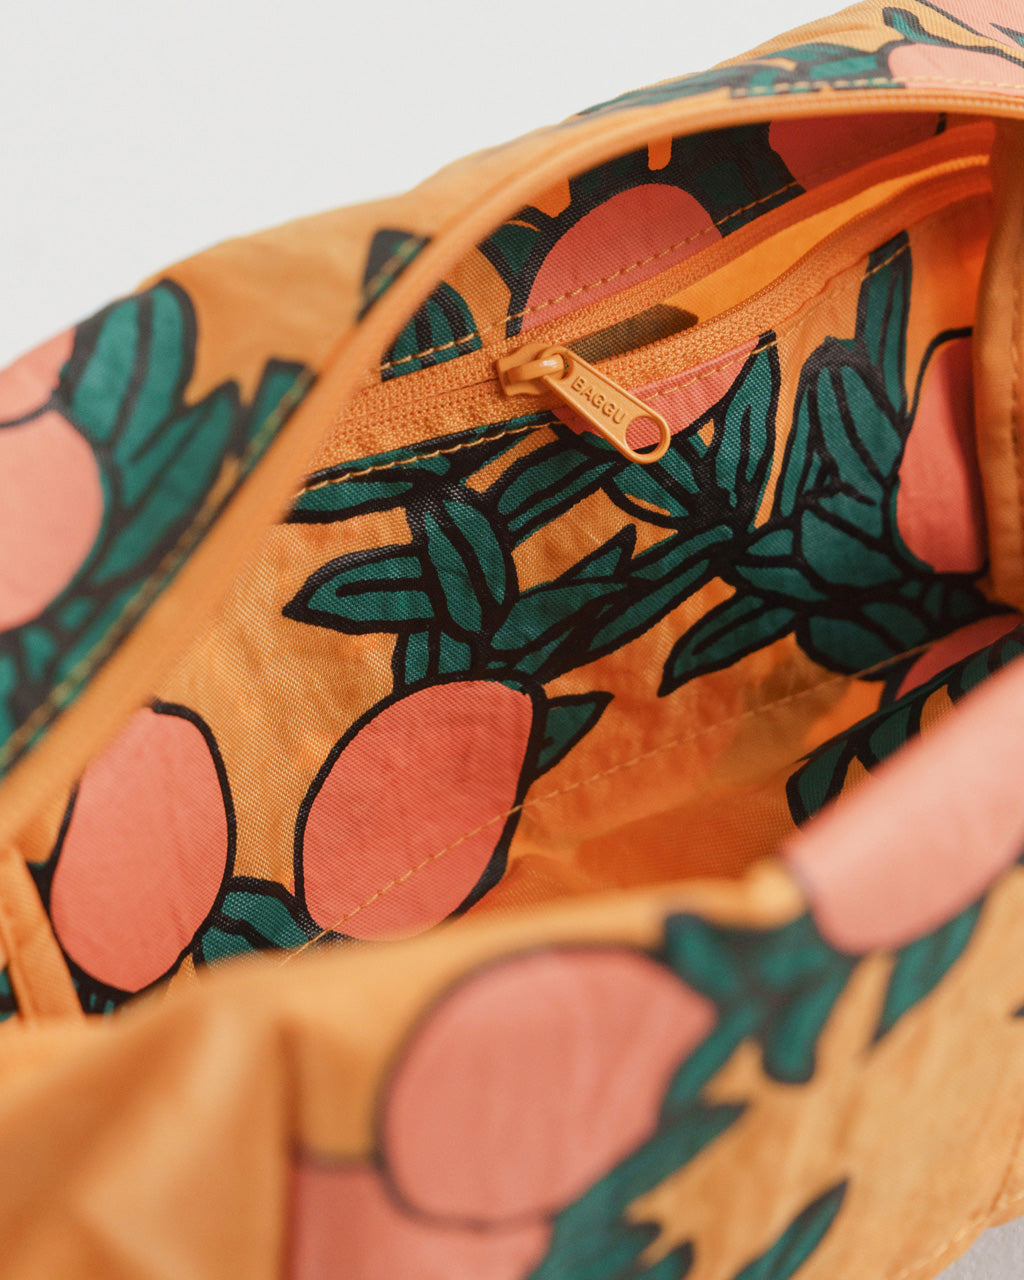 close up interior shot of dopp kit with handle in marigold with all over orange tree pattern